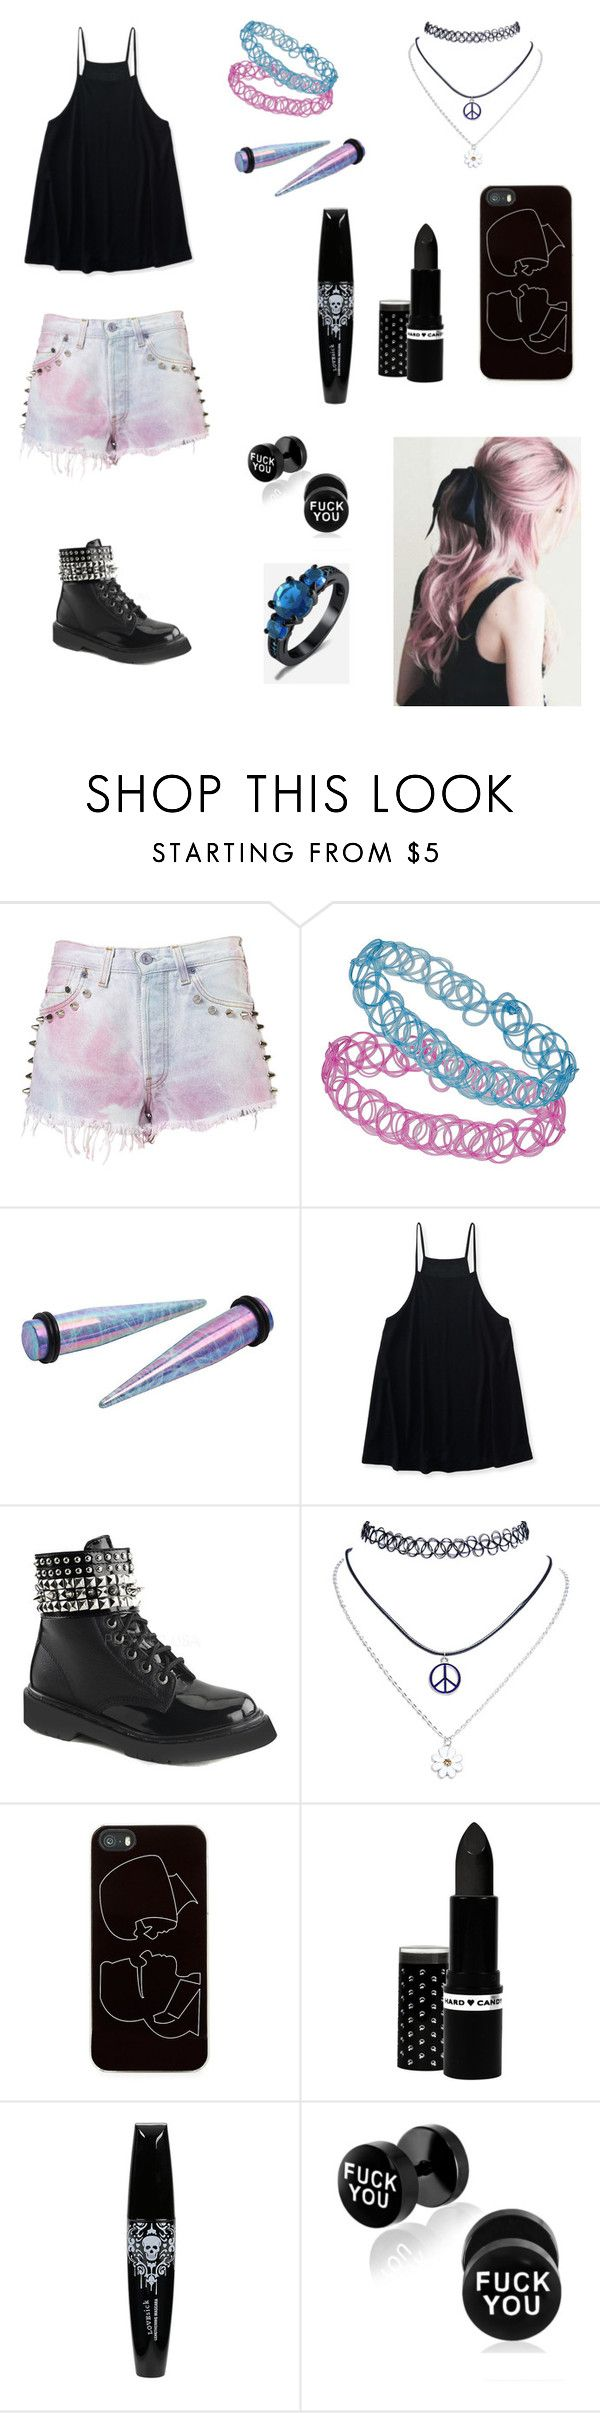 """Pastel Goth (again)"" by aesthetically-cynical ❤ liked on Polyvore featuring The Ragged Priest, Topshop, Aéropostale, Demonia, Wet Seal, Zero Gravity and Hard Candy"